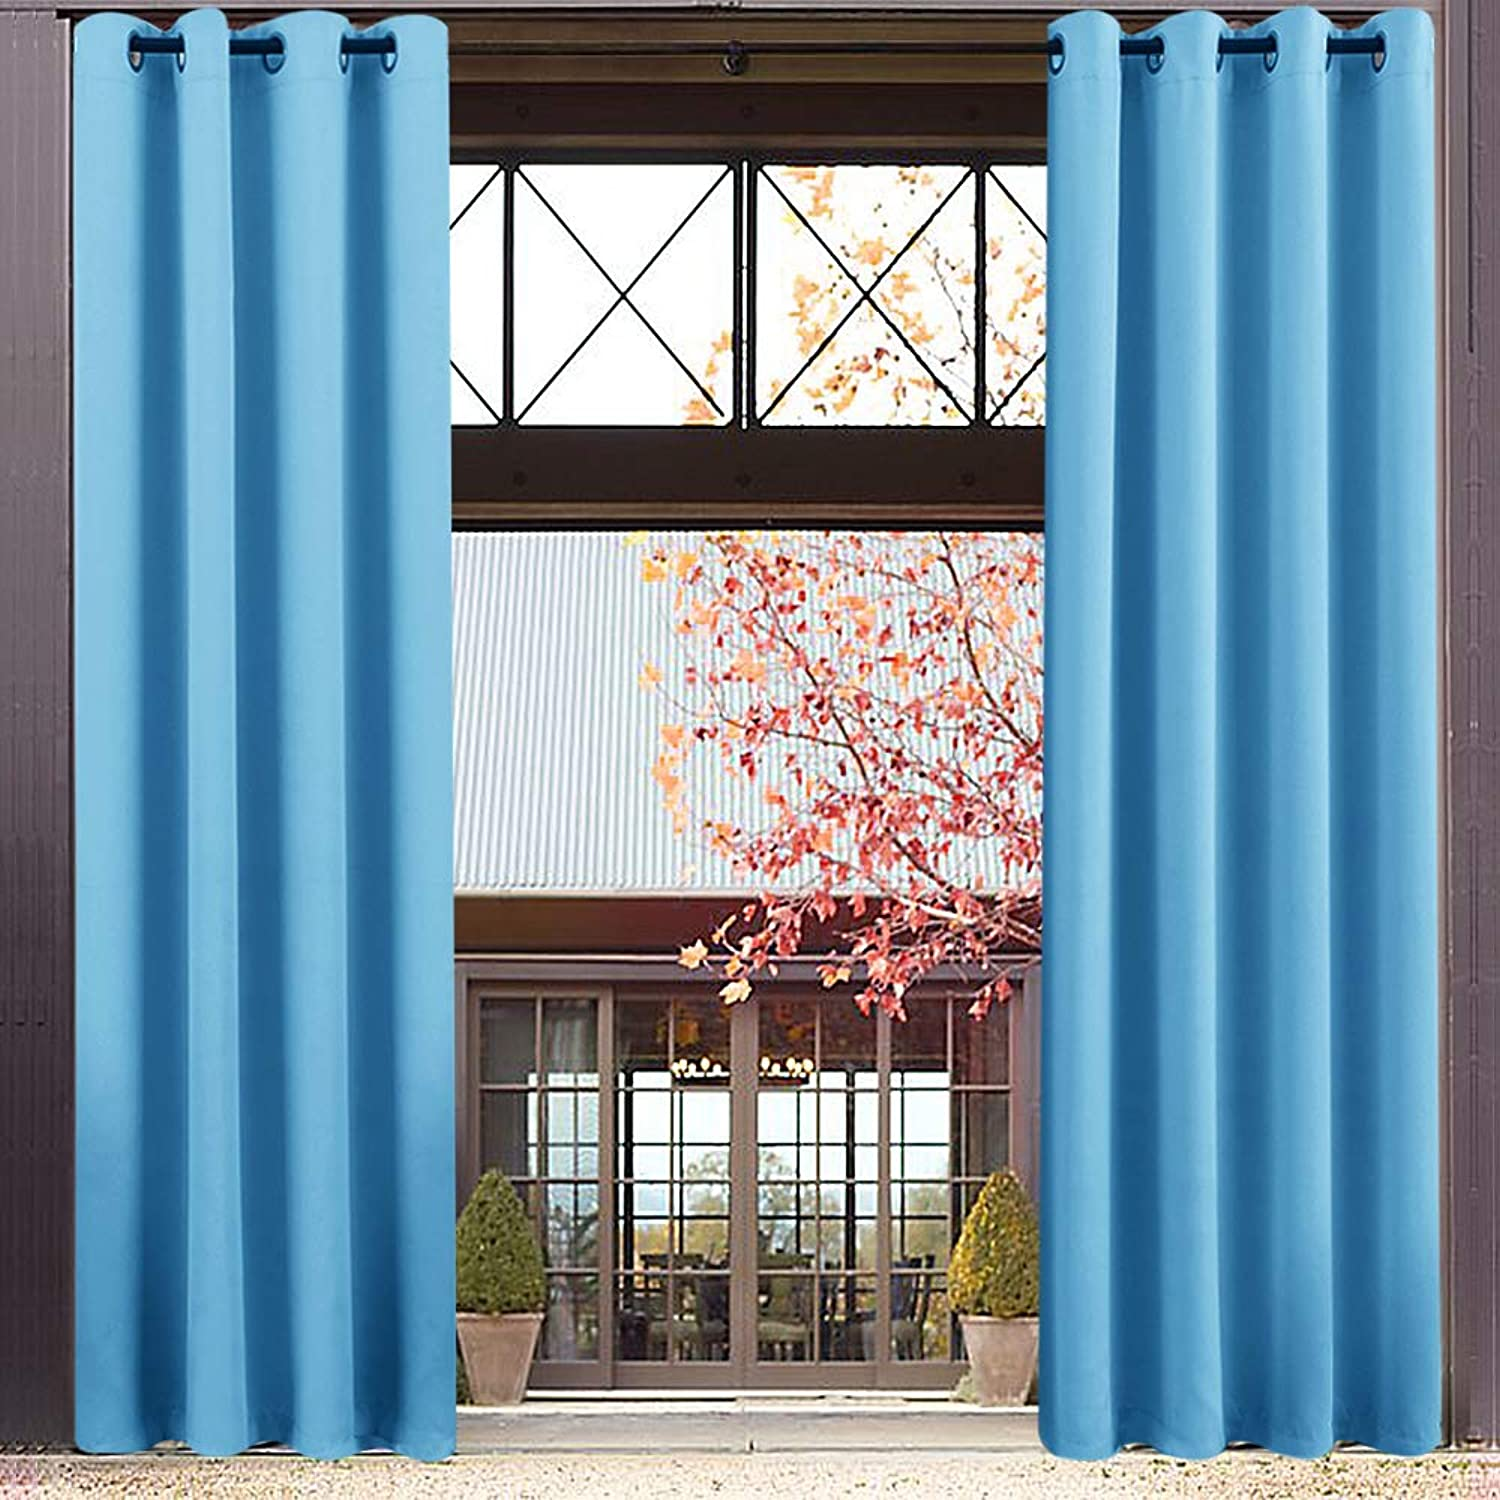 Blackout Curtains for Boy's Room 84 inches Long Triple Weave Nursery Window Curtain Panels for Kids Room Darkening Thermal Insulated Drapes, Grommet Top, 1 Pair, Royal bluee